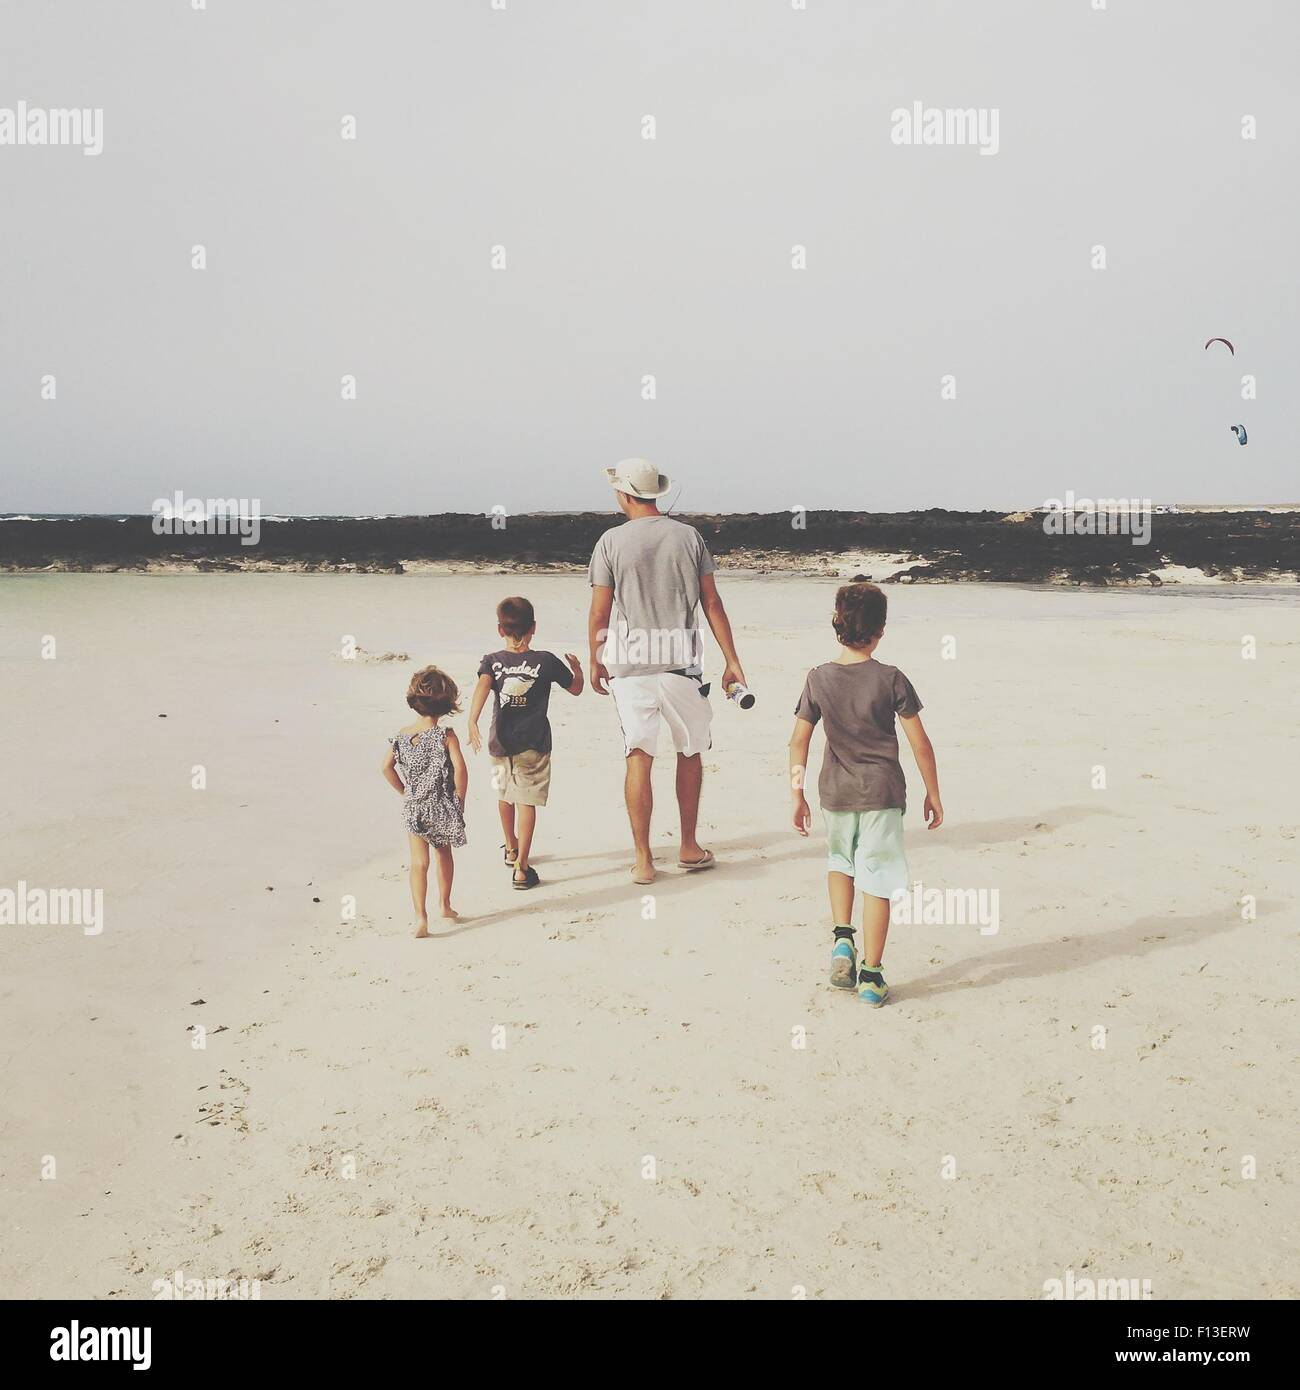 Rear view of a man with three children walking on the beach - Stock Image